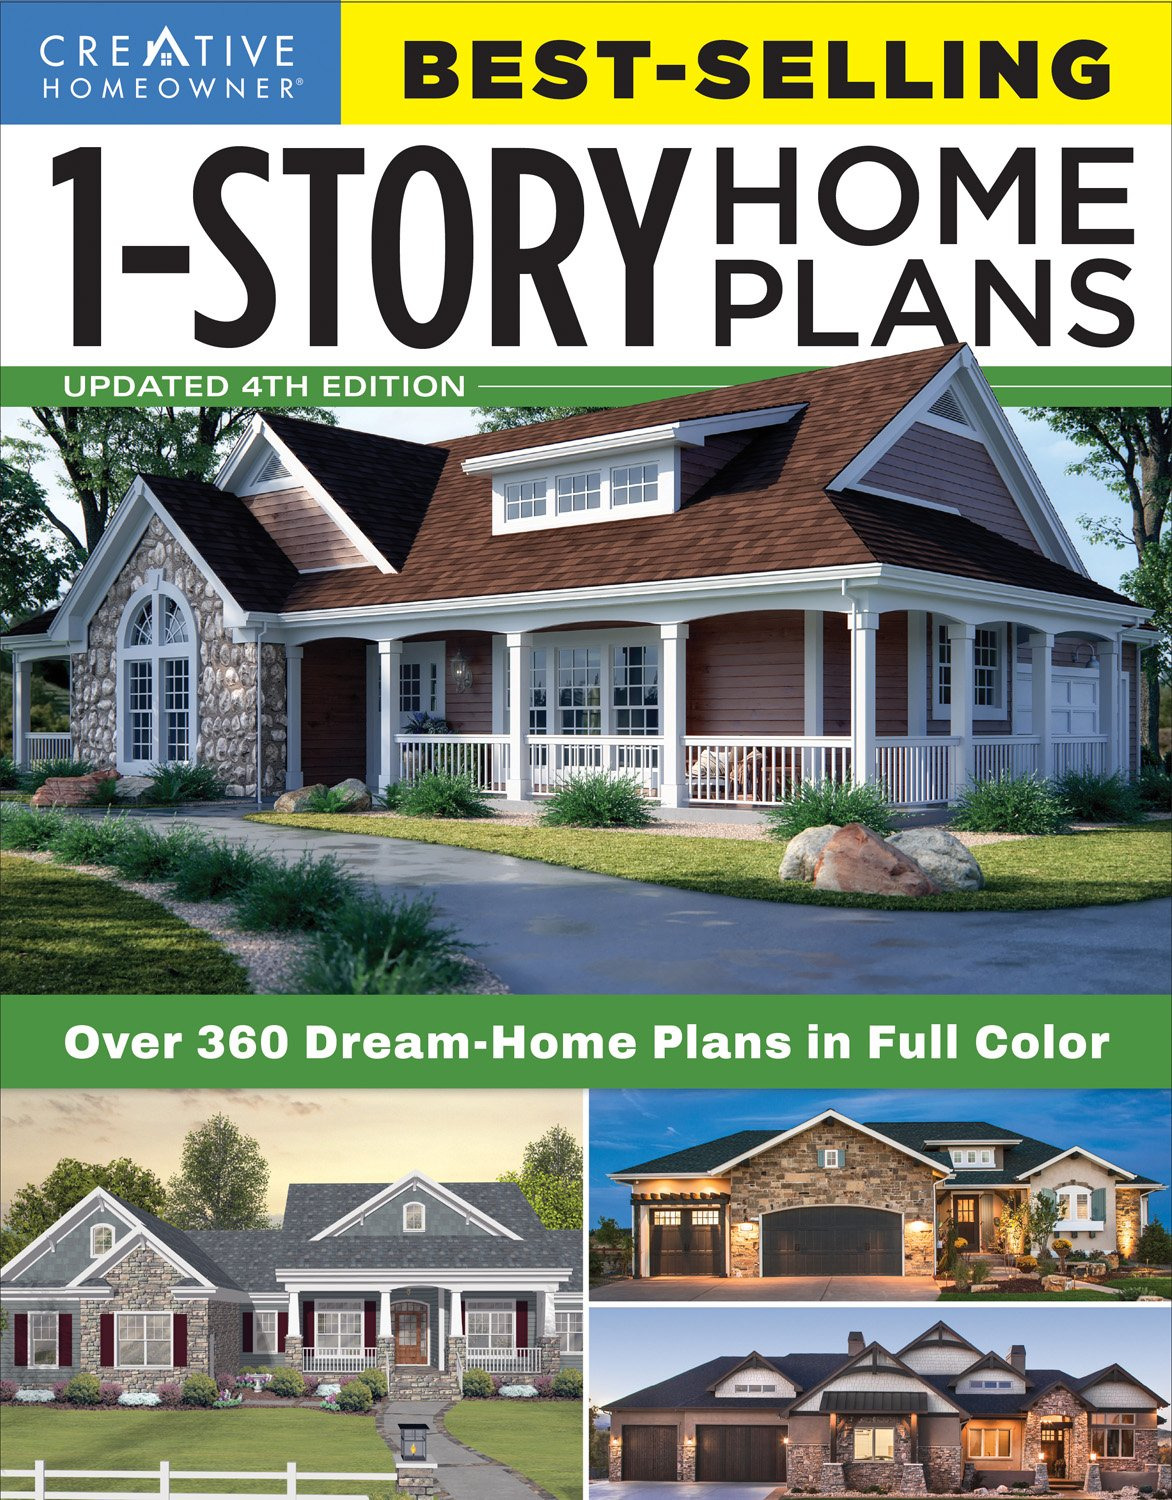 House Plans for Sale with Cost to Build Elegant Best Selling 1 Story Home Plans Updated 4th Edition Over